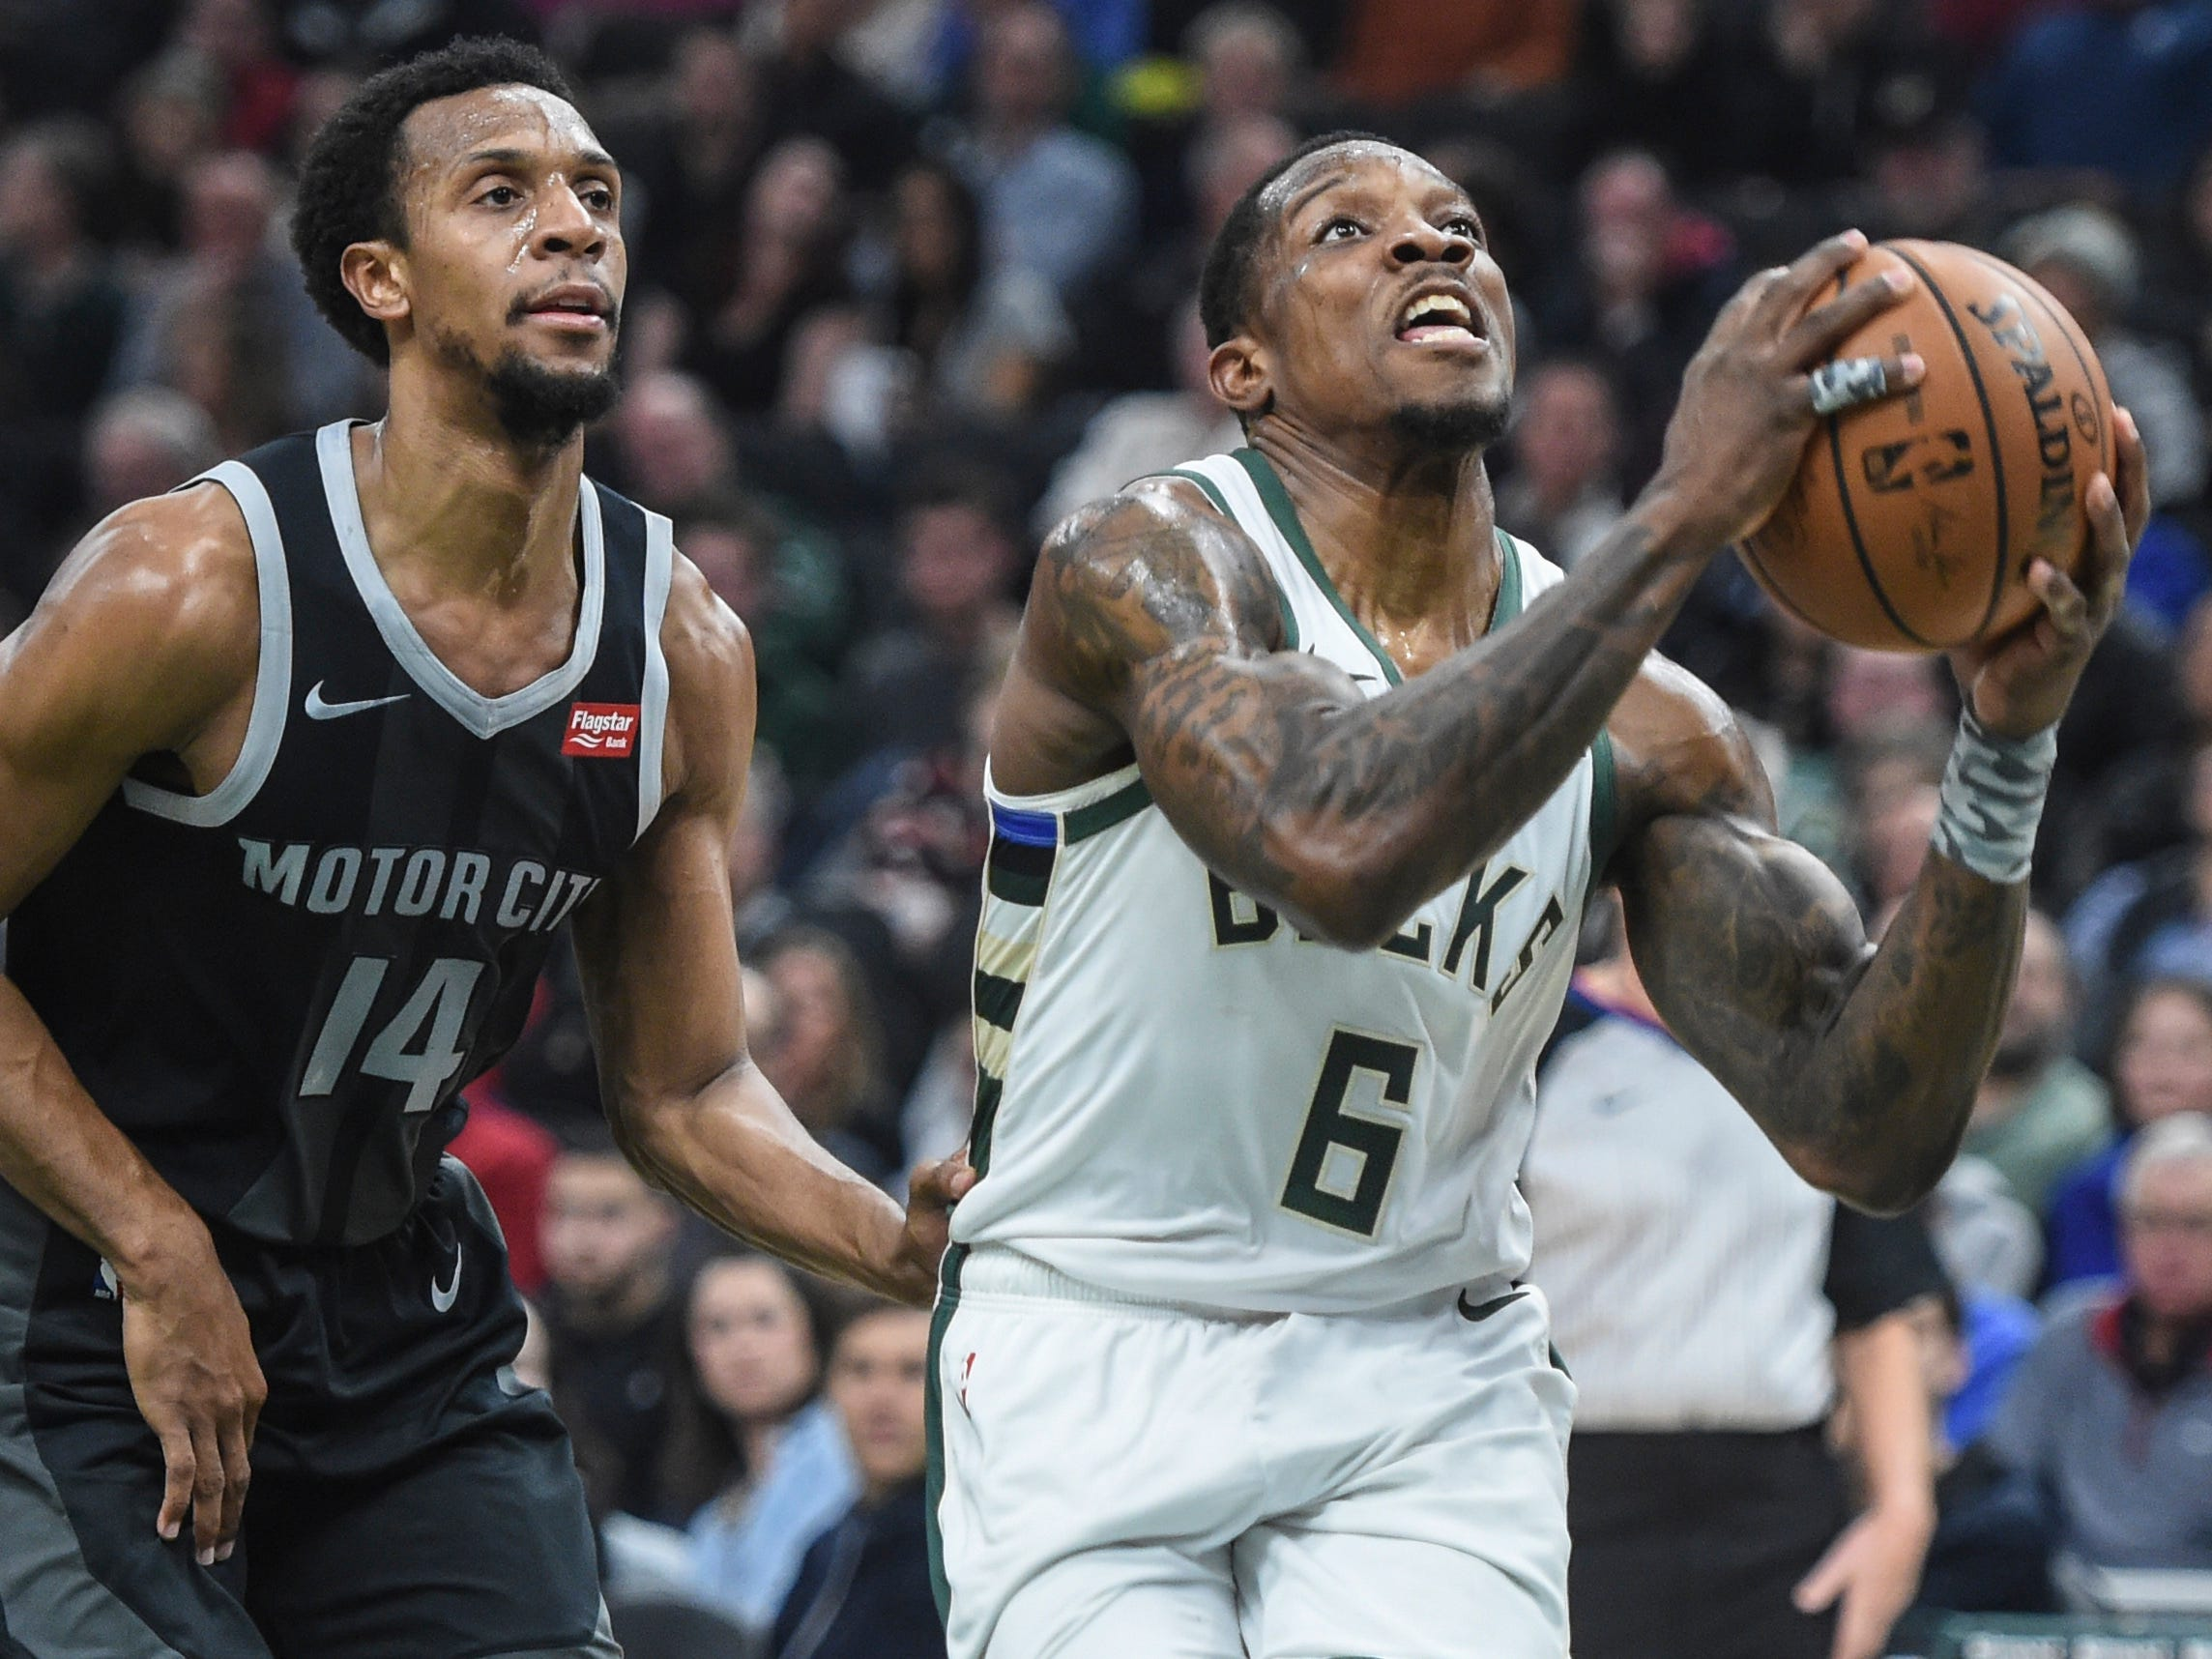 Bucks guard Eric Bledsoe gets past Pistons guard Ish Smith on a drive to the basket that netted him two of his team-high 27 points on Wednesday night at Fiserv Forum.